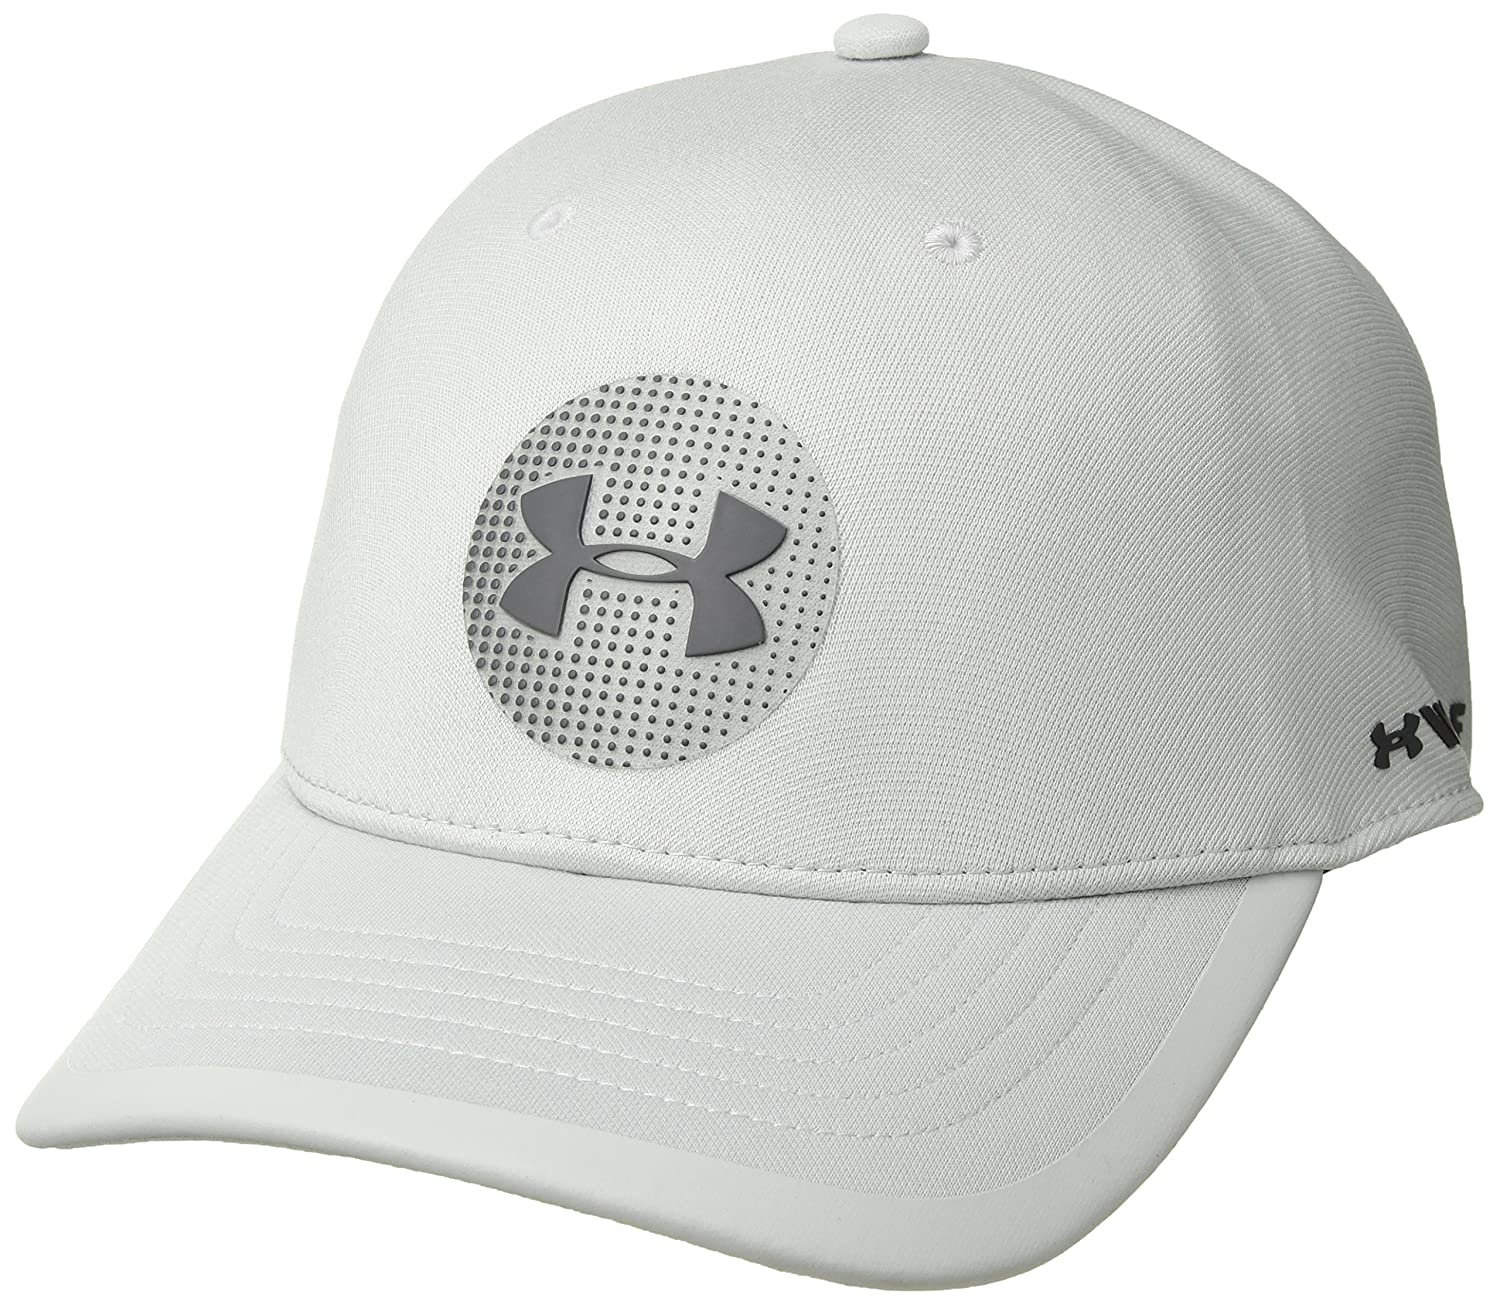 a97f027bd60 ... coupon code for amazon under armour mens elevated jordan spieth tour cap  sports outdoors 49dcf a649d